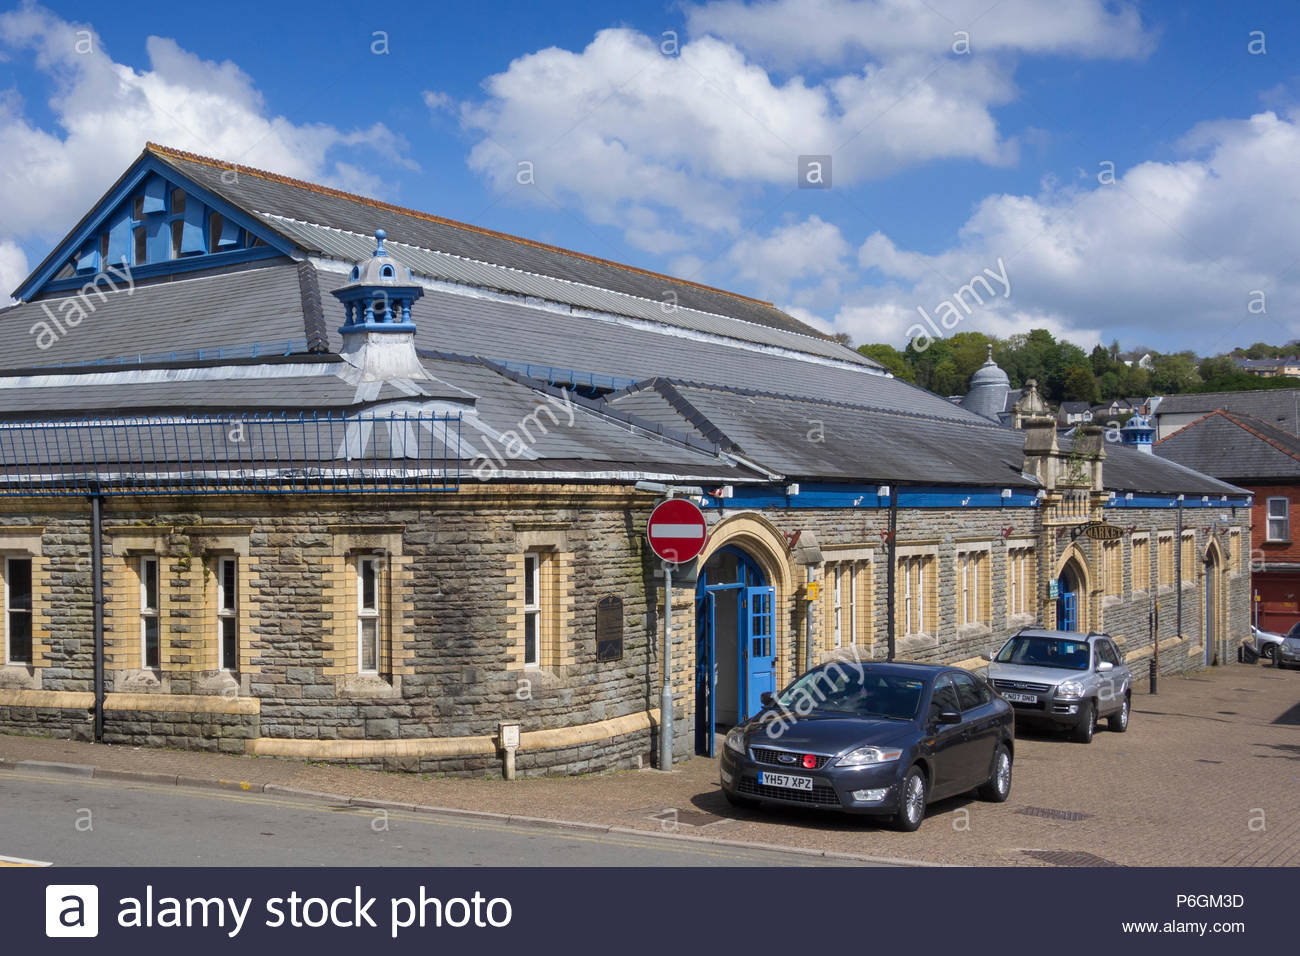 Pontypool Market Hall, a Grade II listed Victorian building in Pontypool town centre Torfaen, Gwent, Wales, UK. - Stock Image